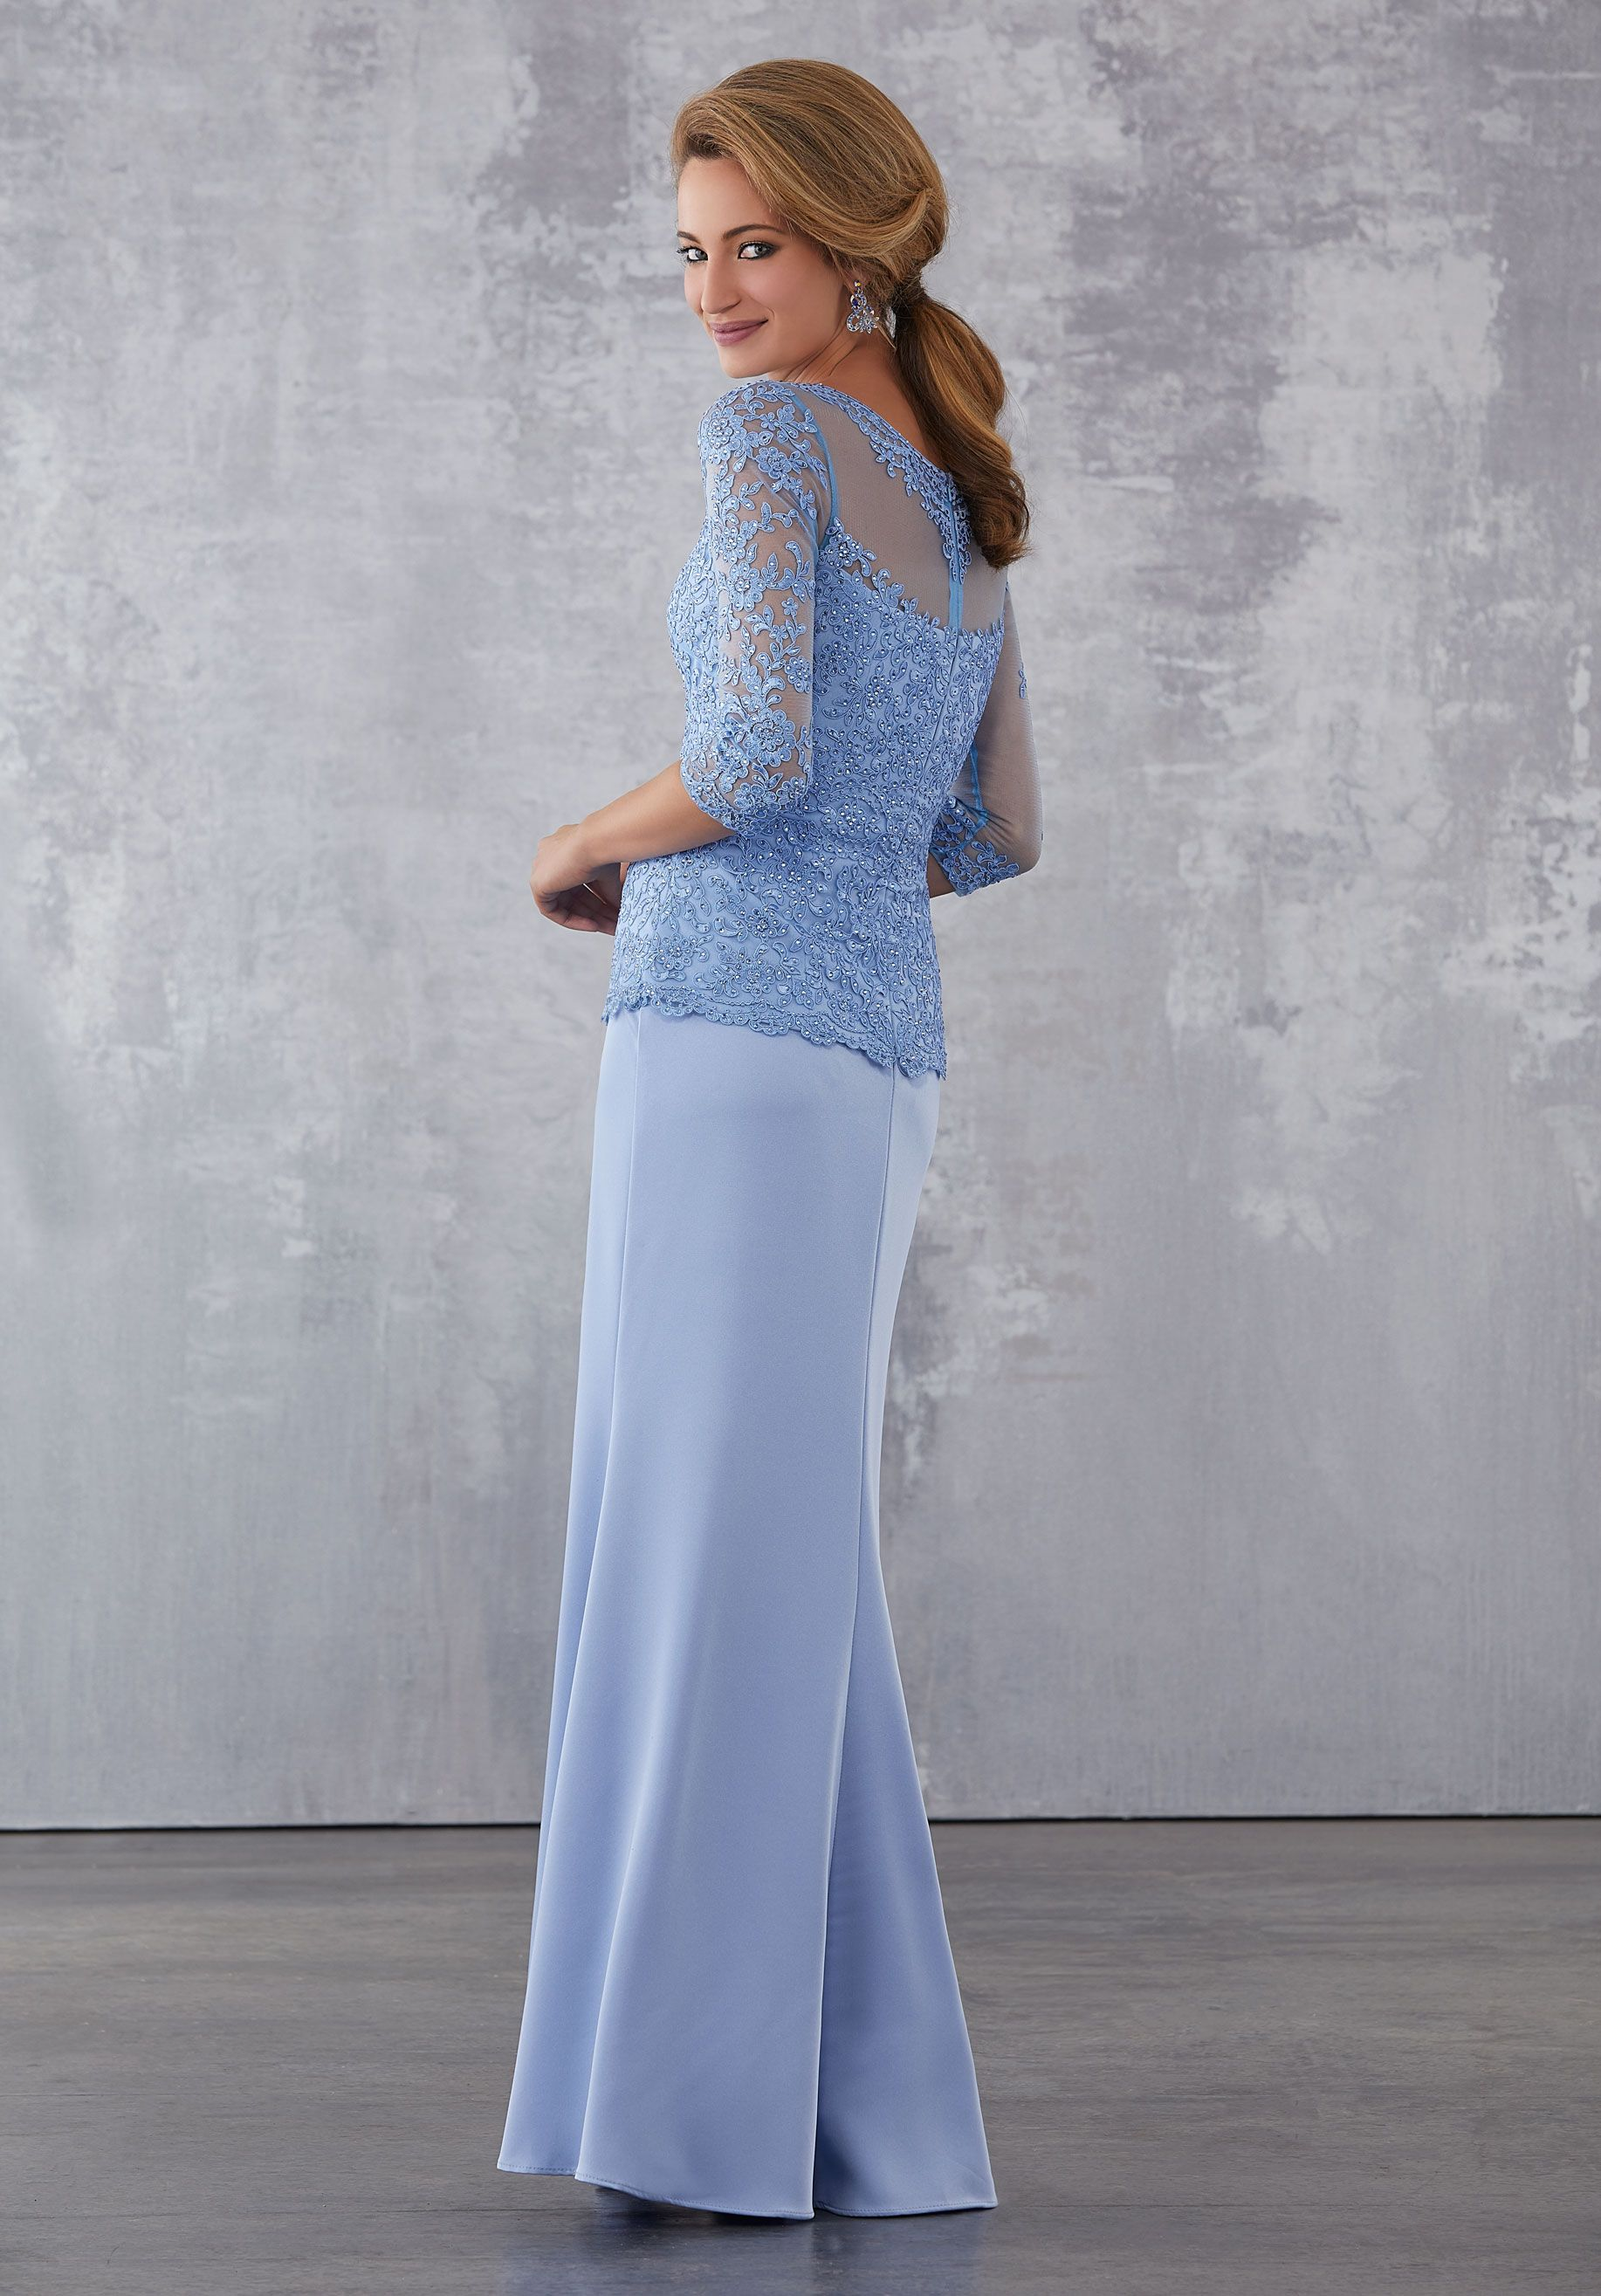 Mori lee motherus dresses style number beaded lace on silky